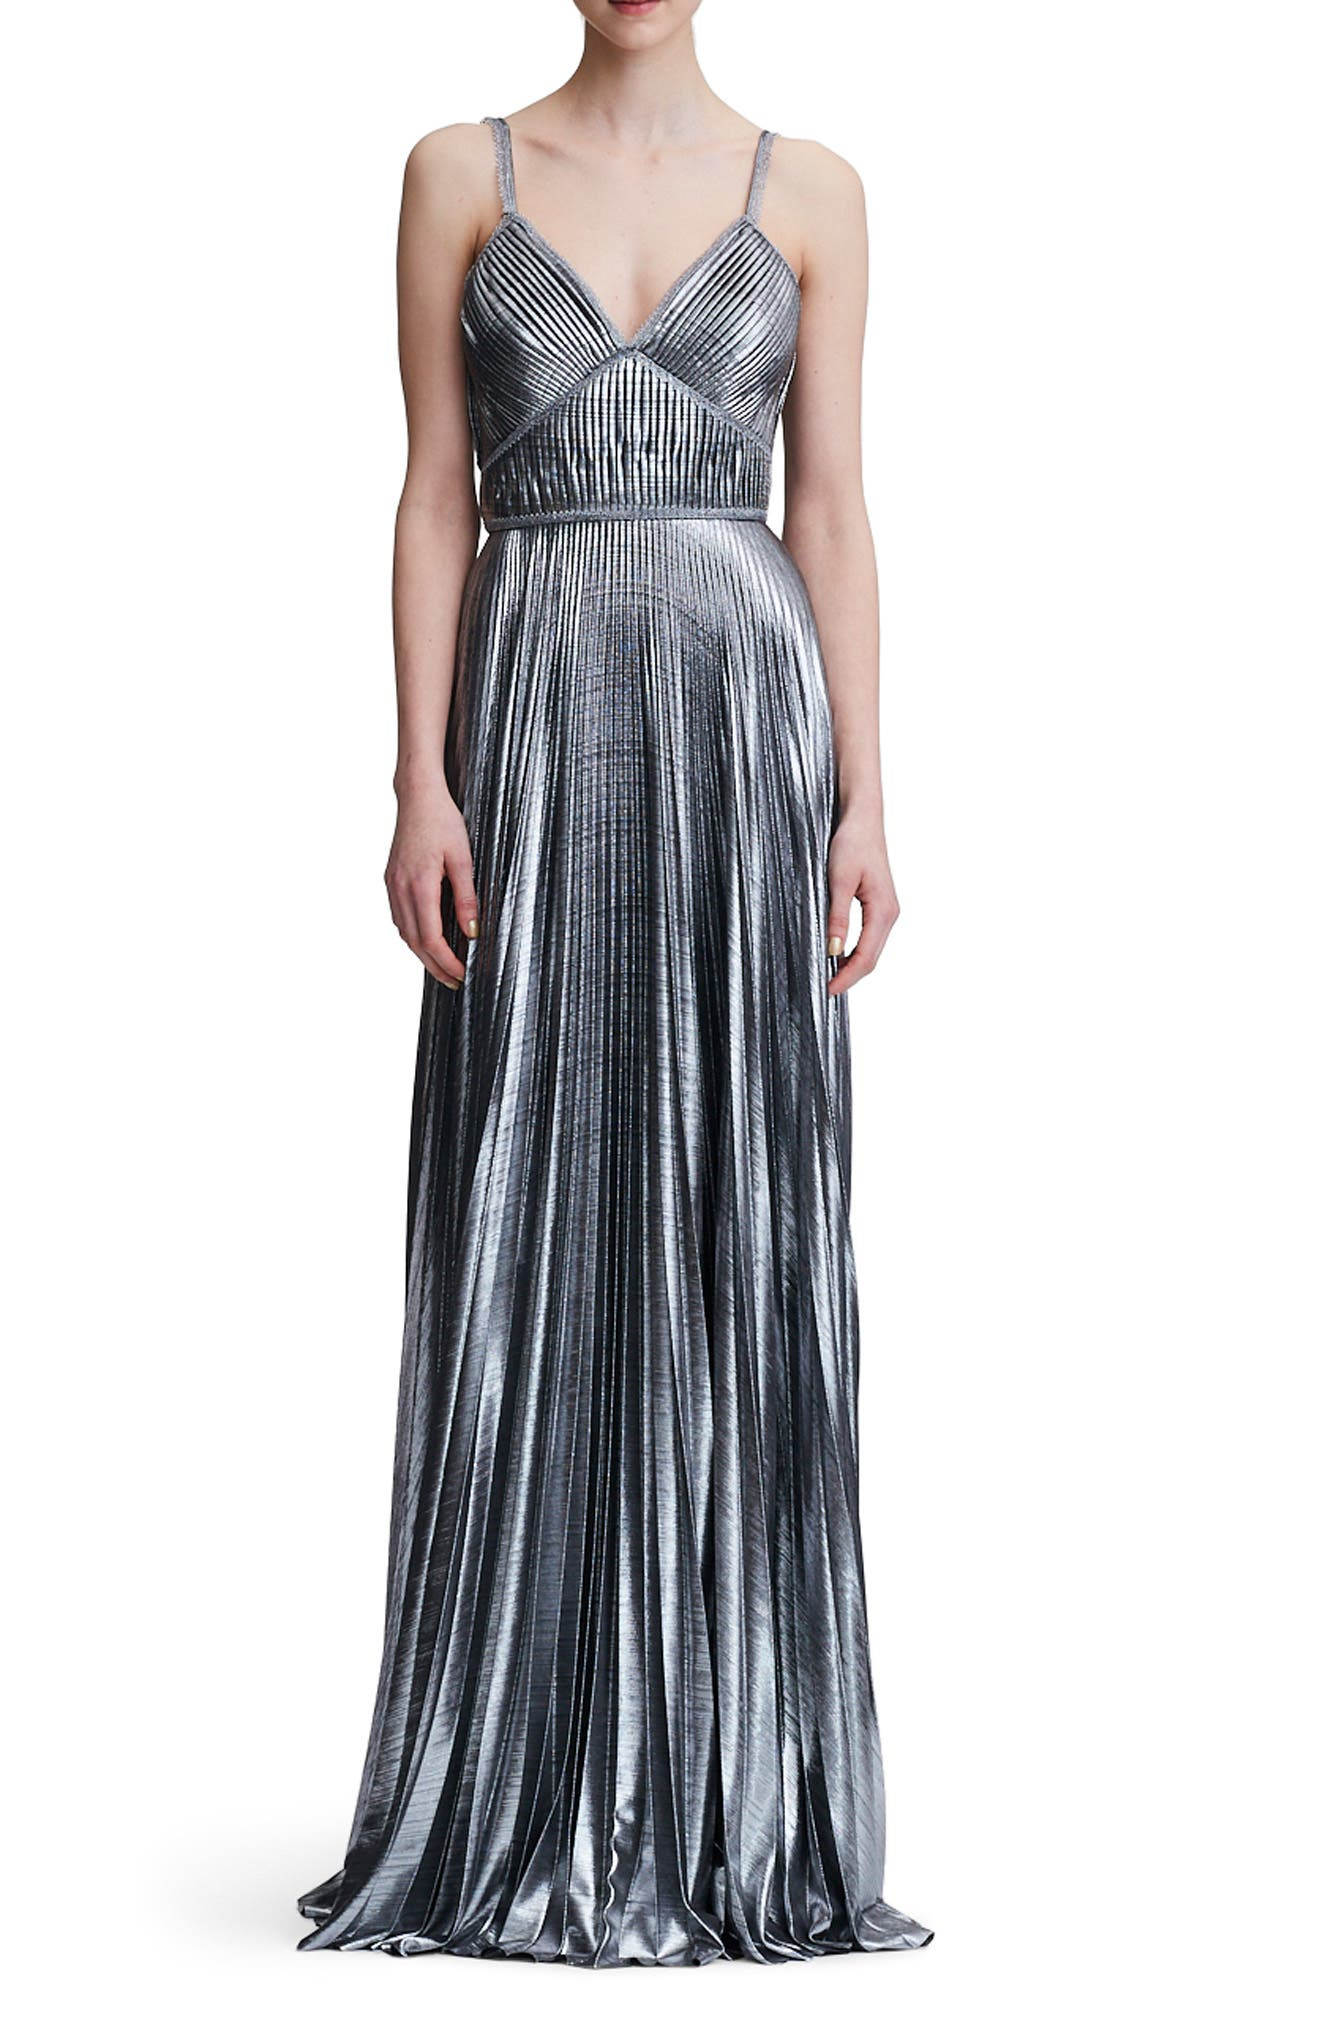 1920s Evening Dresses & Formal Gowns Womens Marchesa Notte Pleated Lame A-Line Gown $895.00 AT vintagedancer.com